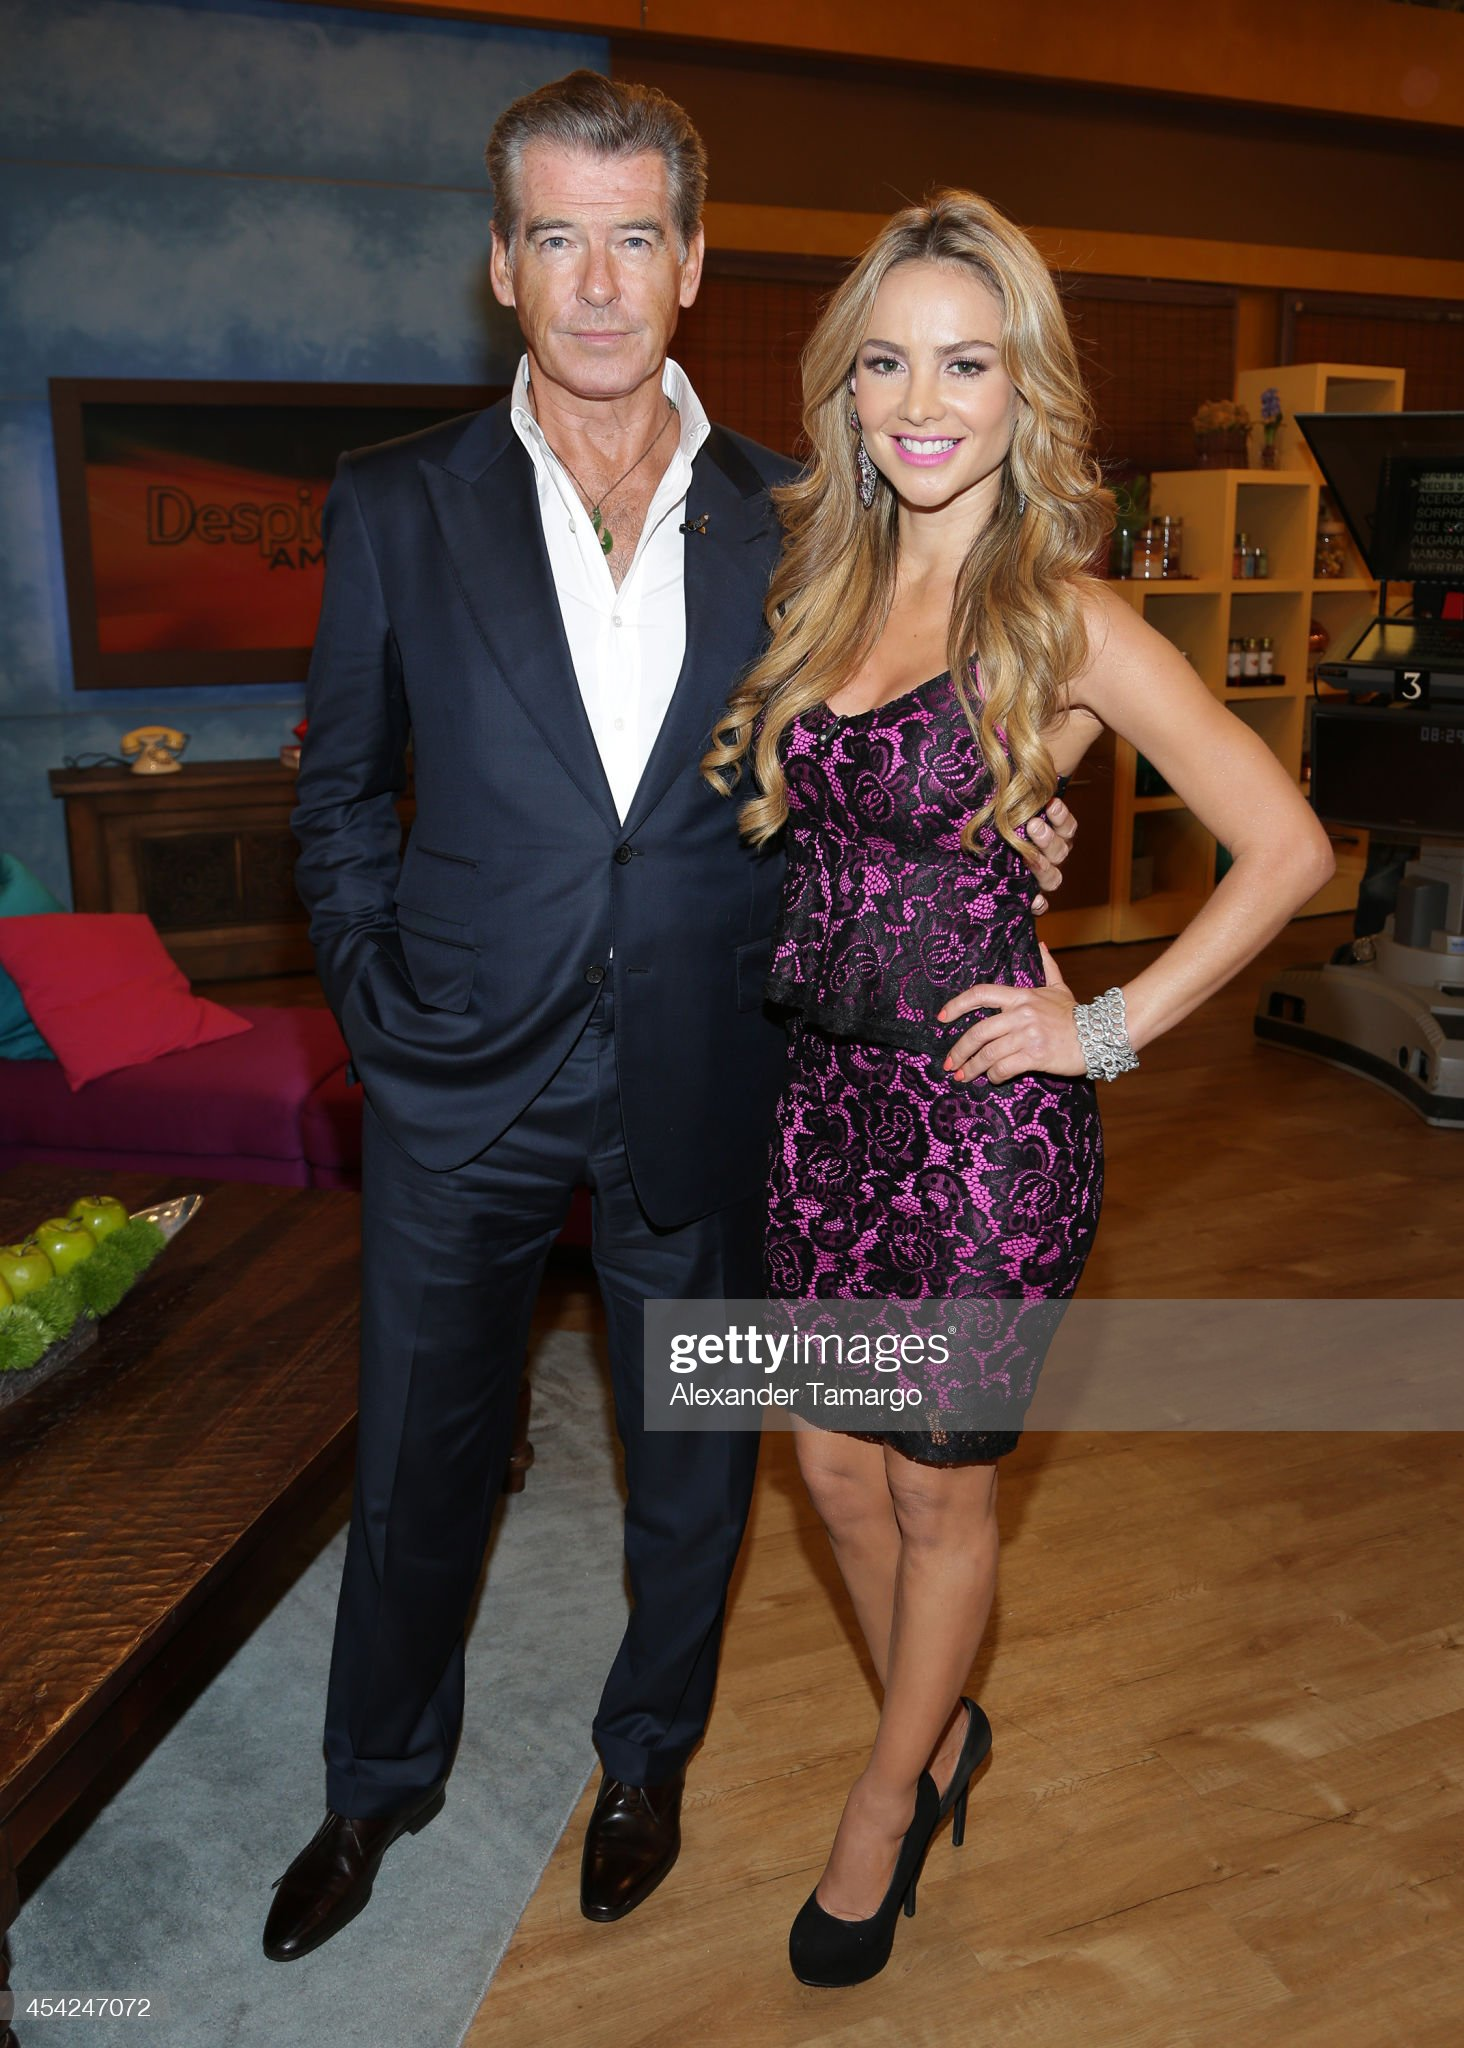 ¿Cuánto mide Ximena Córdoba? - Altura - Real height Pierce-brosnan-and-ximena-cordoba-appear-on-the-set-of-univisions-picture-id454247072?s=2048x2048